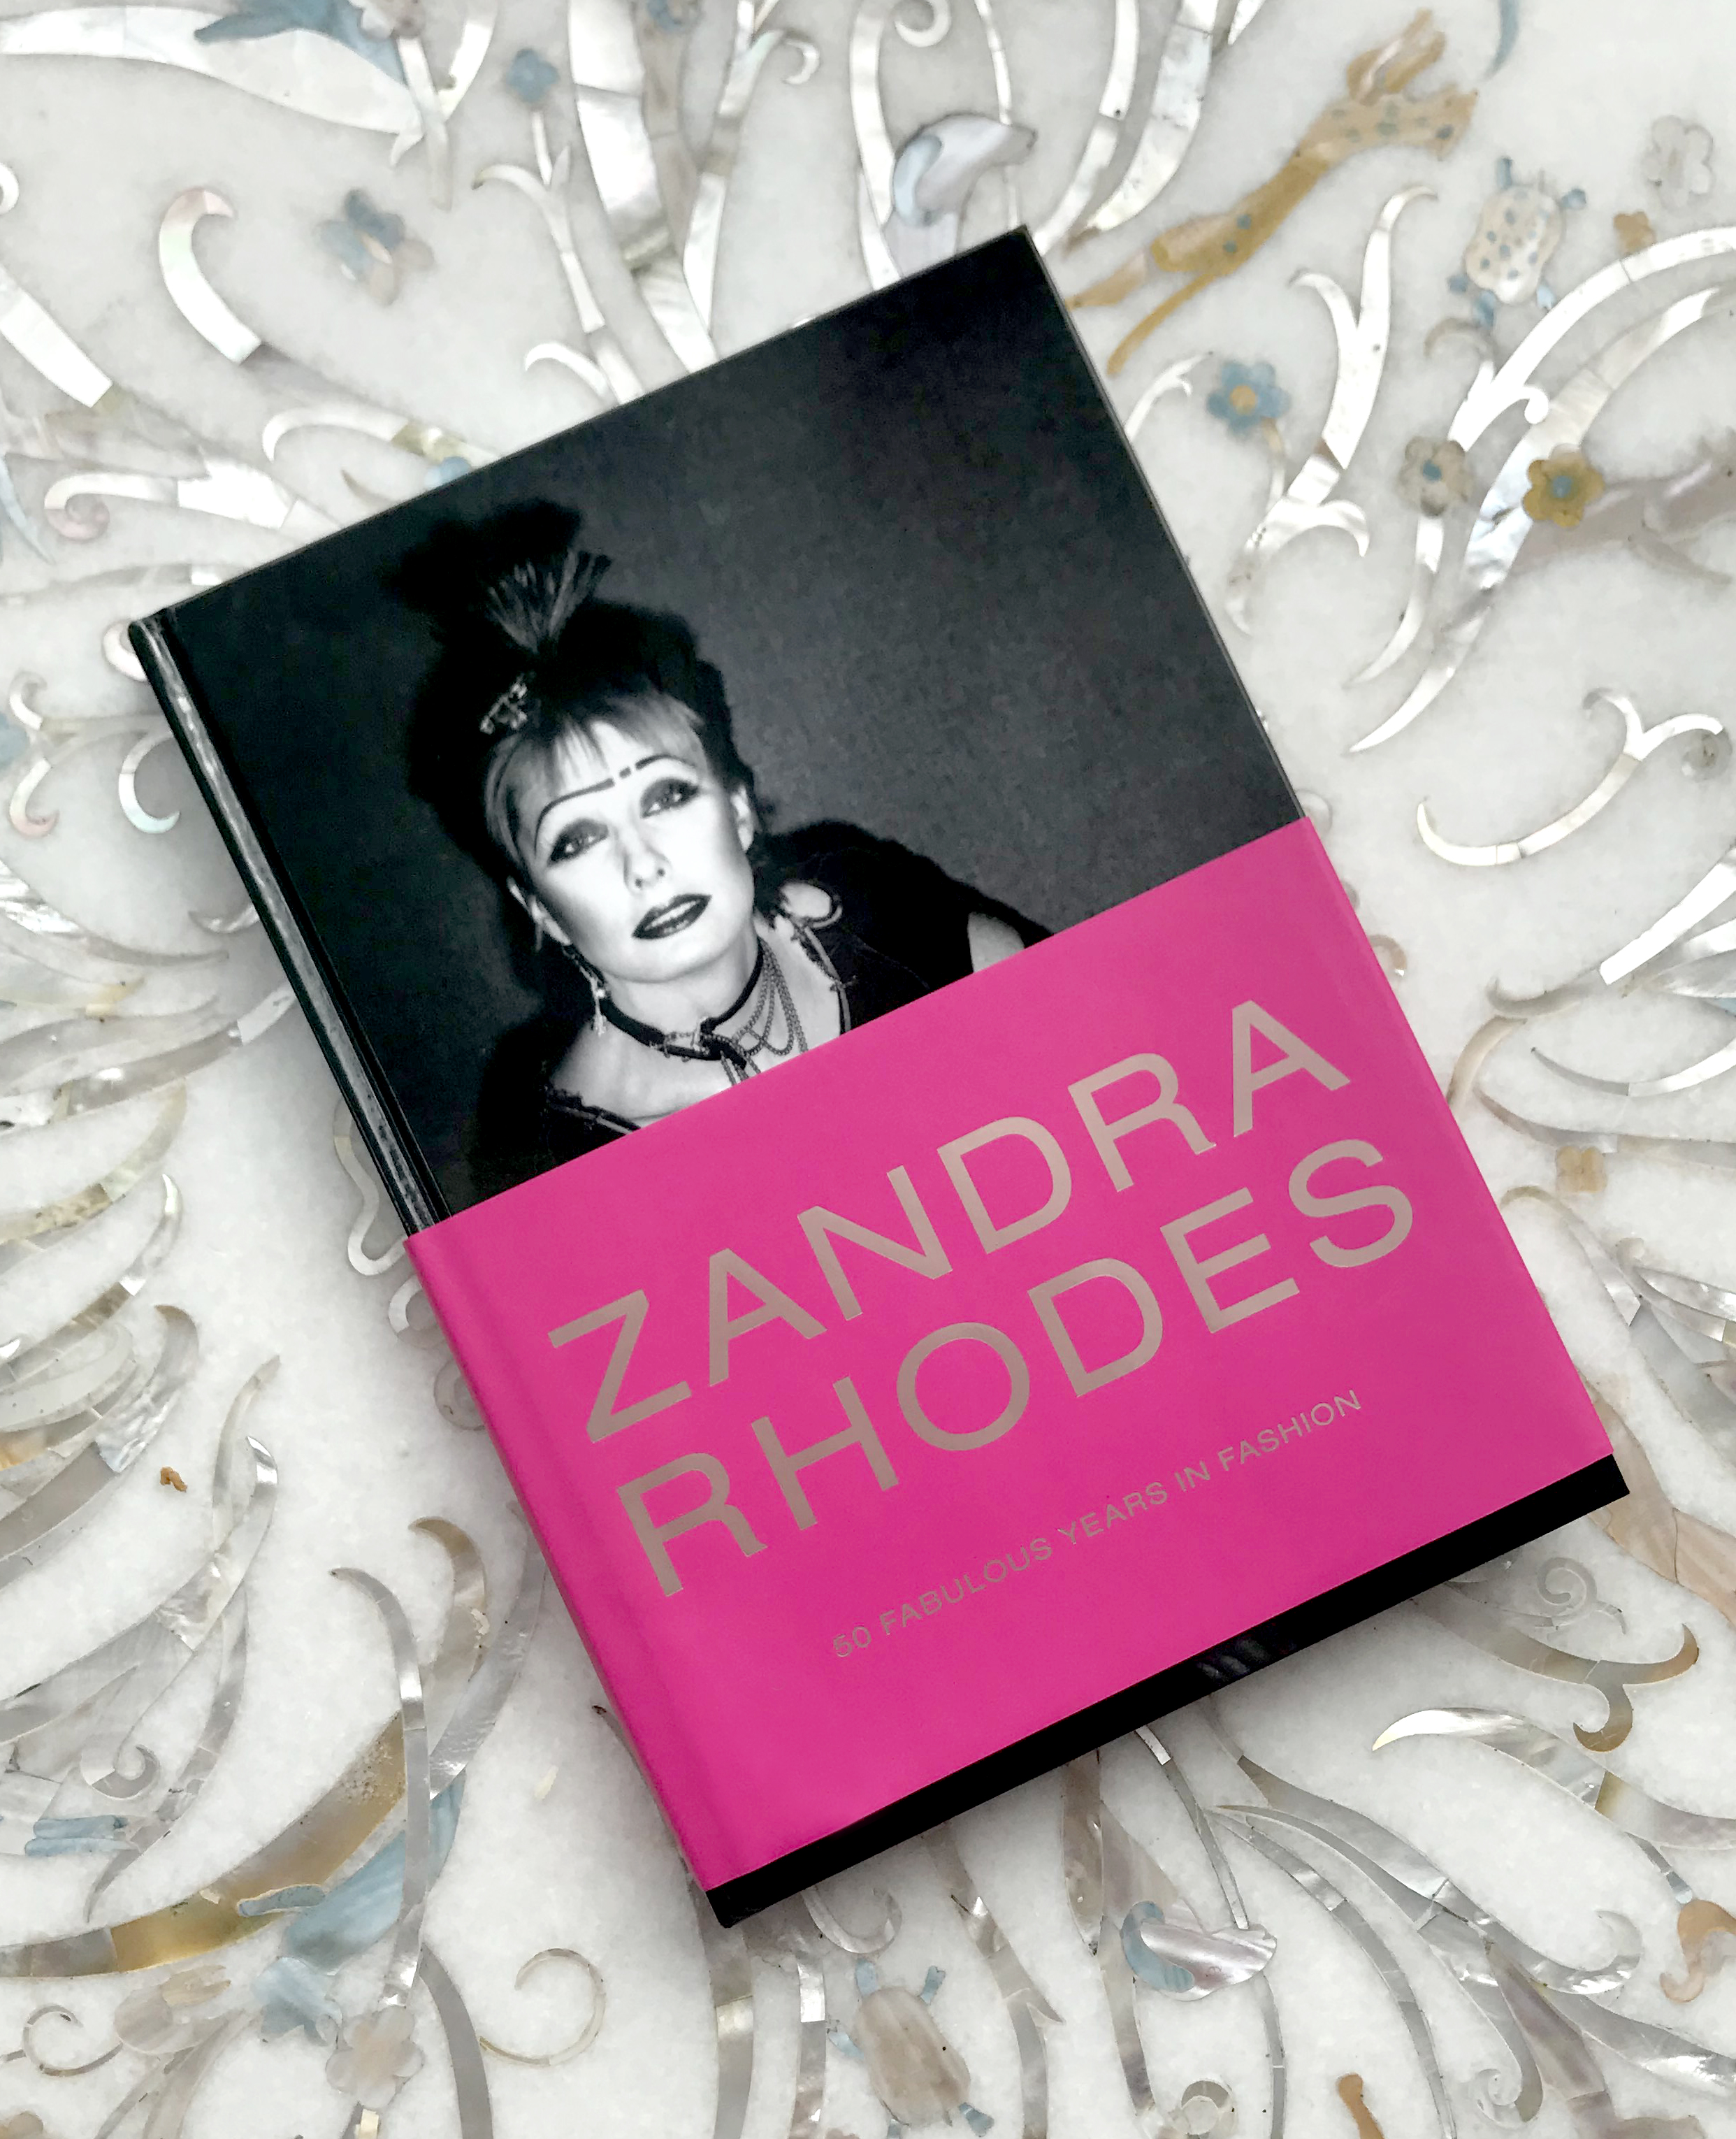 Zandra Rhodes: 50 Fabulous Years in Fashion by Dennis Nothdruft with Zandra Rhodes and Iris Apfel, Yale 2019